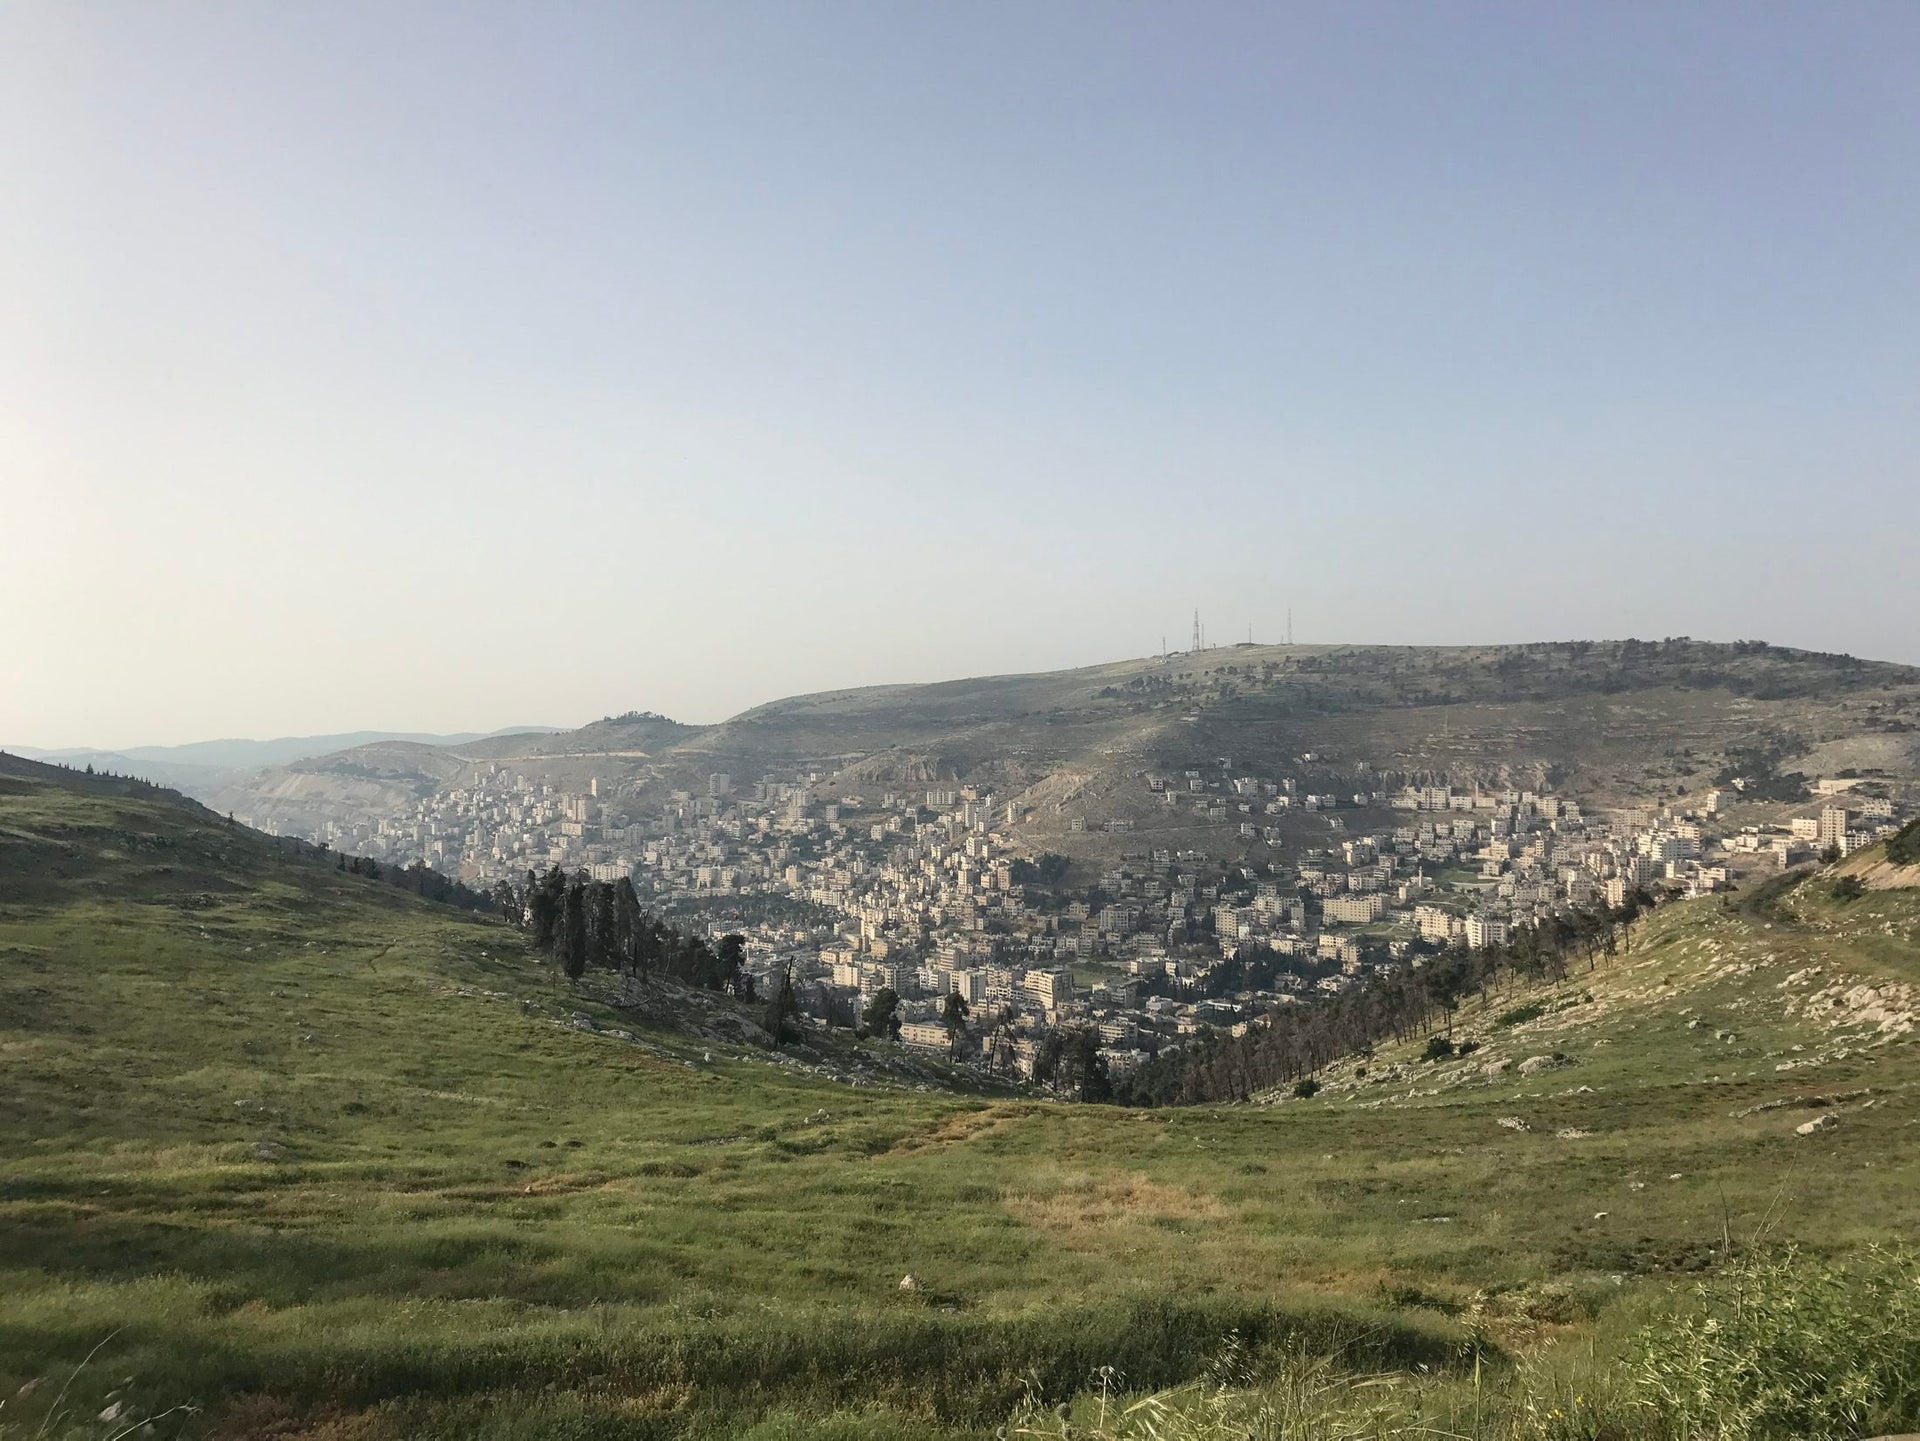 The view of Nablus from Mount Gerizim.